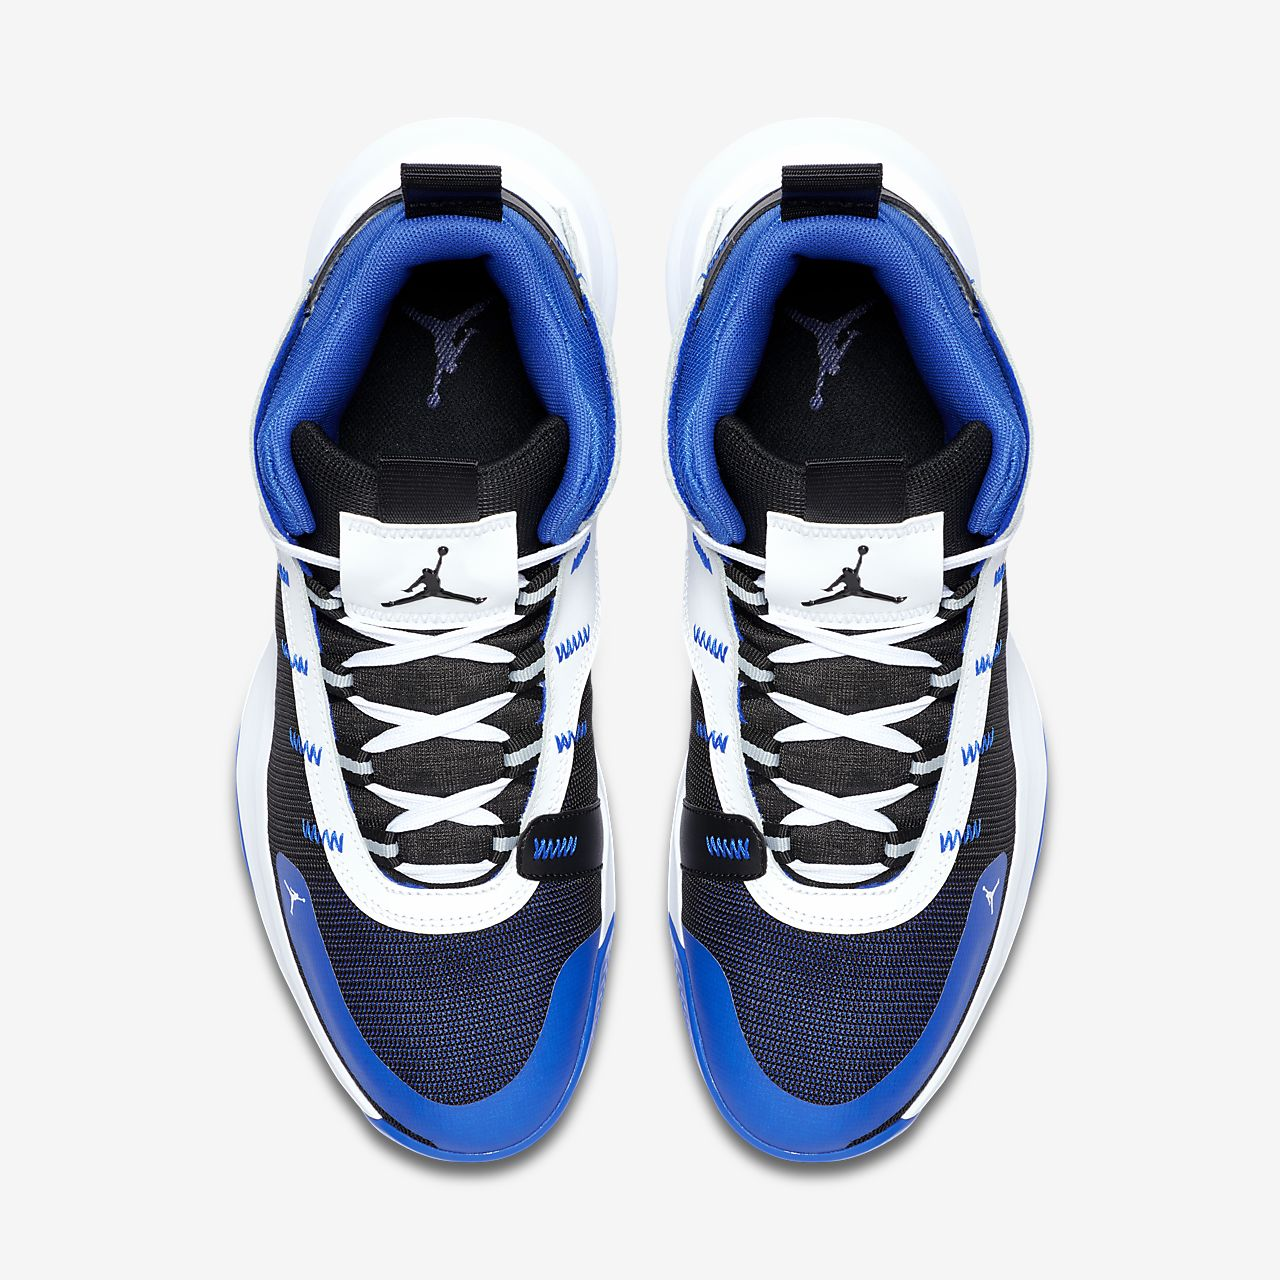 15 Best bastketball shoes for men and women reviews updated 2020